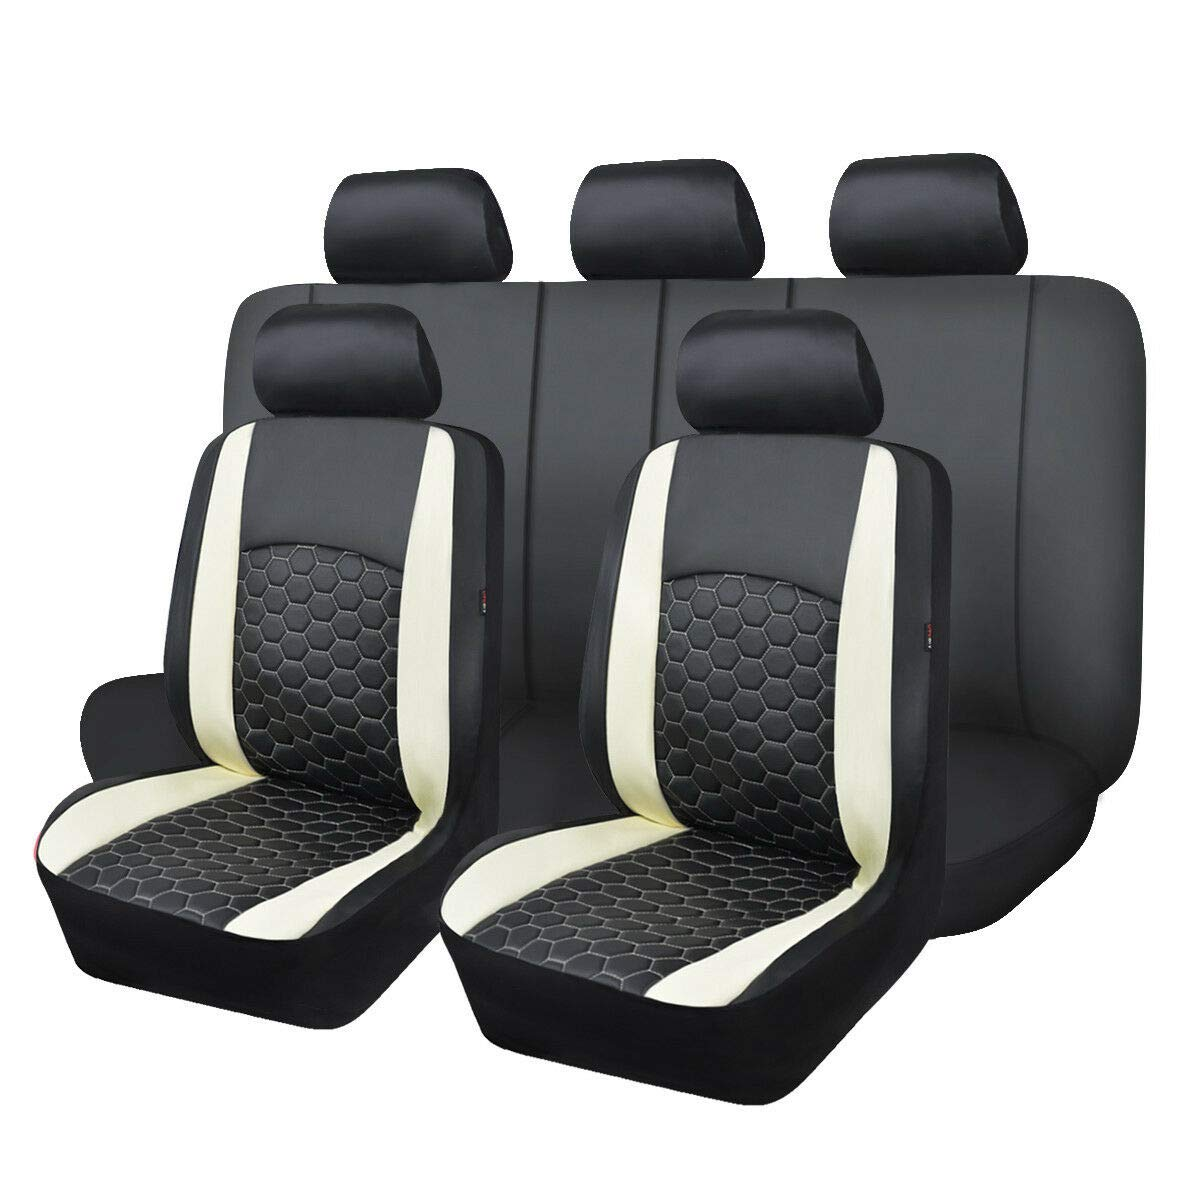 Universal fit Most Car,Truck,SUV and Van PVC Leather White and Black 003-Style Flying Banner 11 PCS Car Seat Covers Full Set Quilting Double Laminated Composite Sponge Airbag Compatible